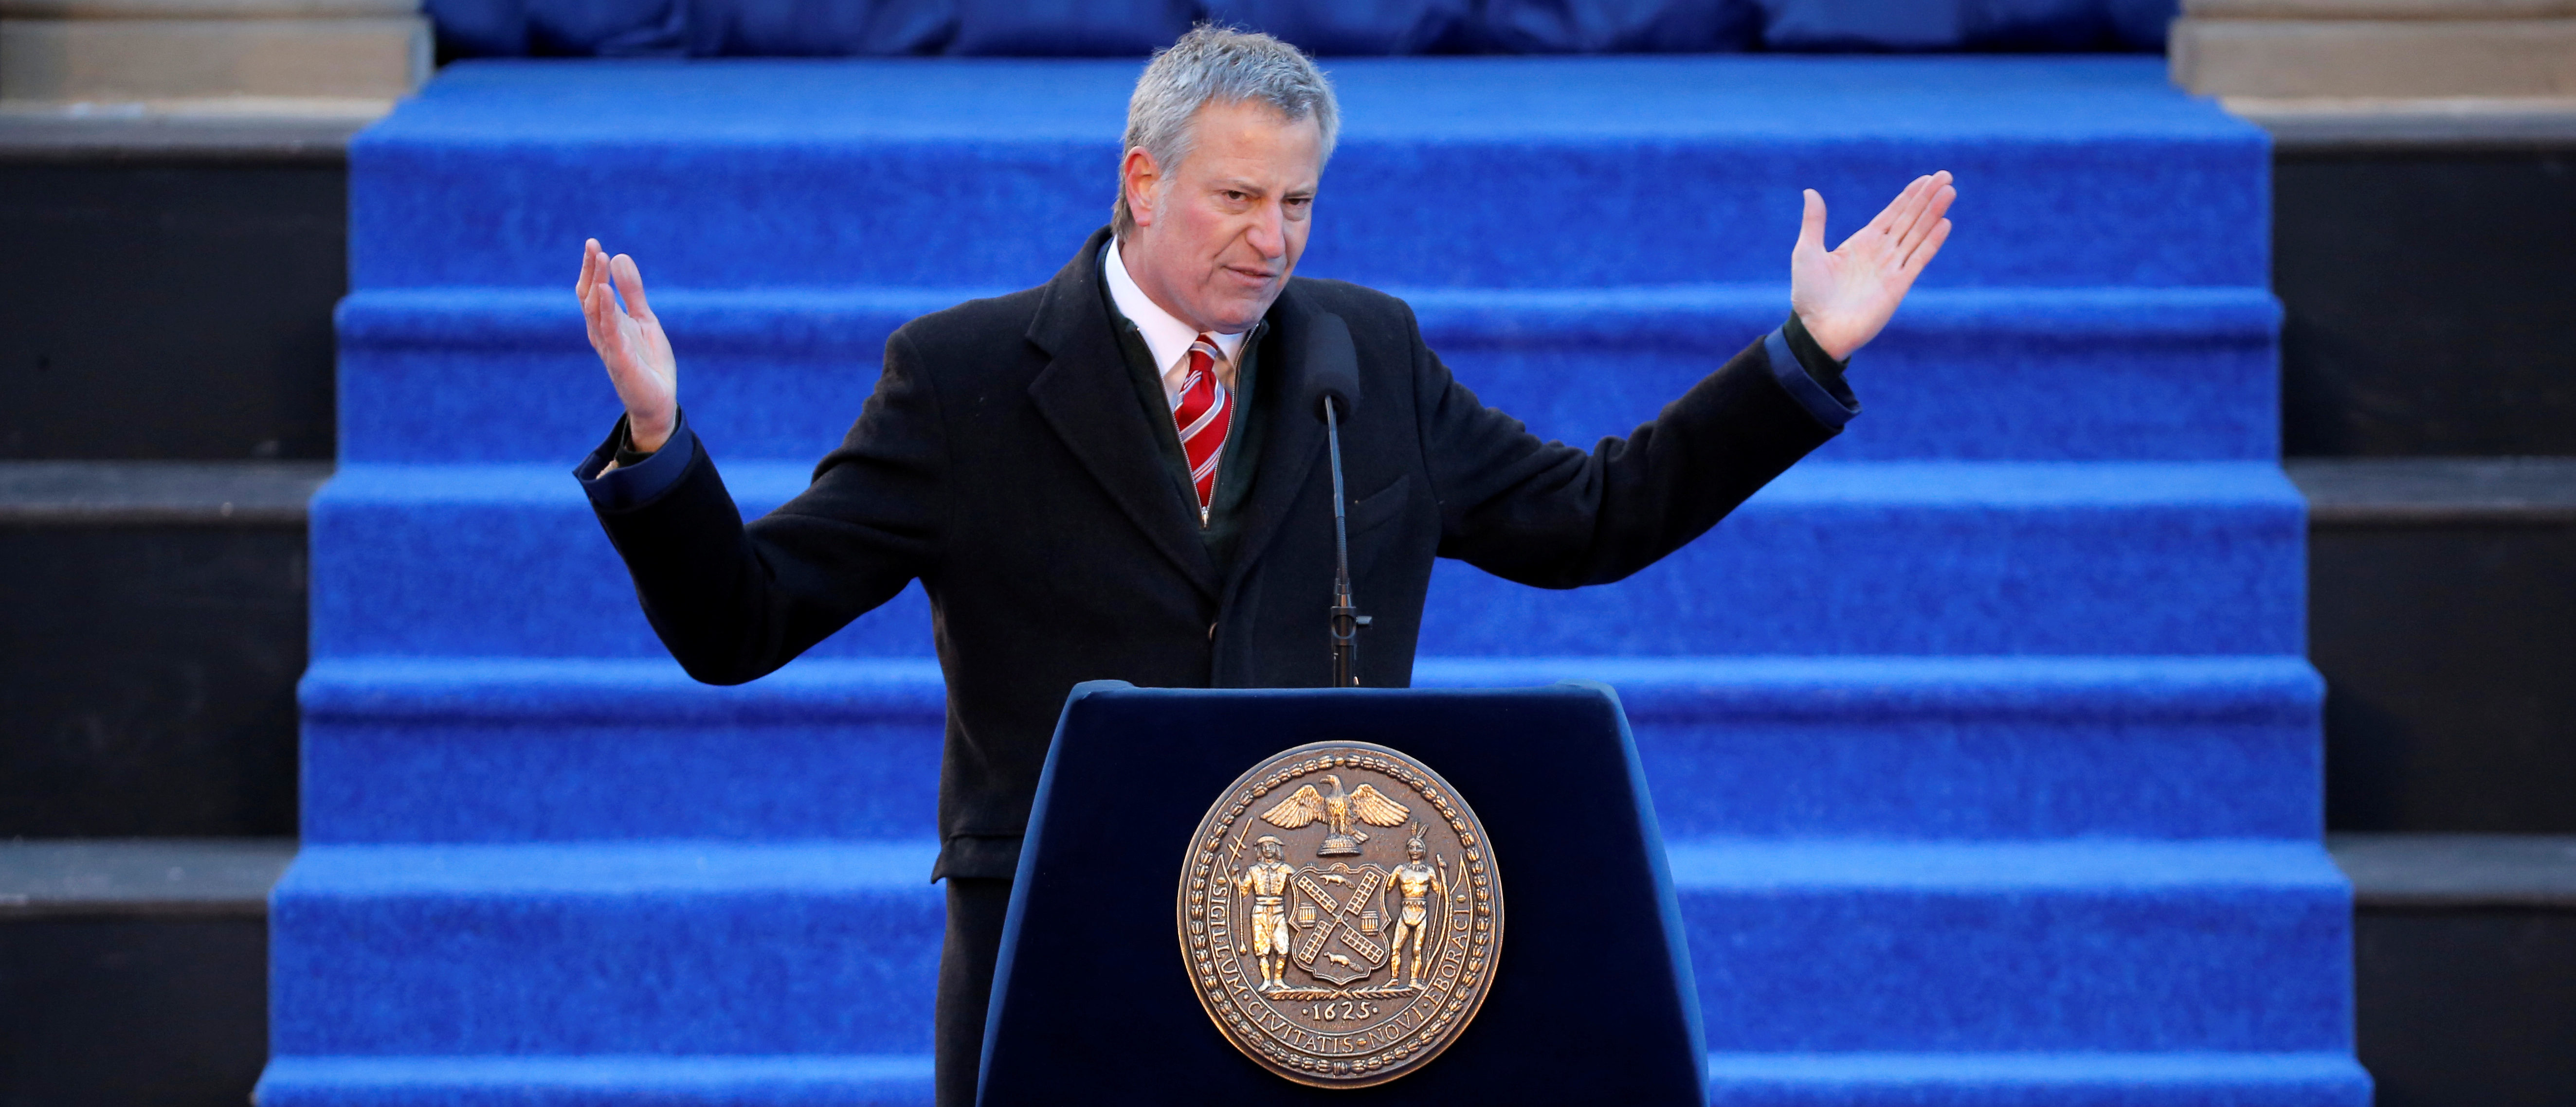 New York City Mayor Bill de Blasio delivers remarks at his 2018 Inaugural Ceremony at City Hall in Manhattan, New York, U.S., January 1, 2018. REUTERS/Andrew Kelly | De Blasio Backs Heroin Injection Sites